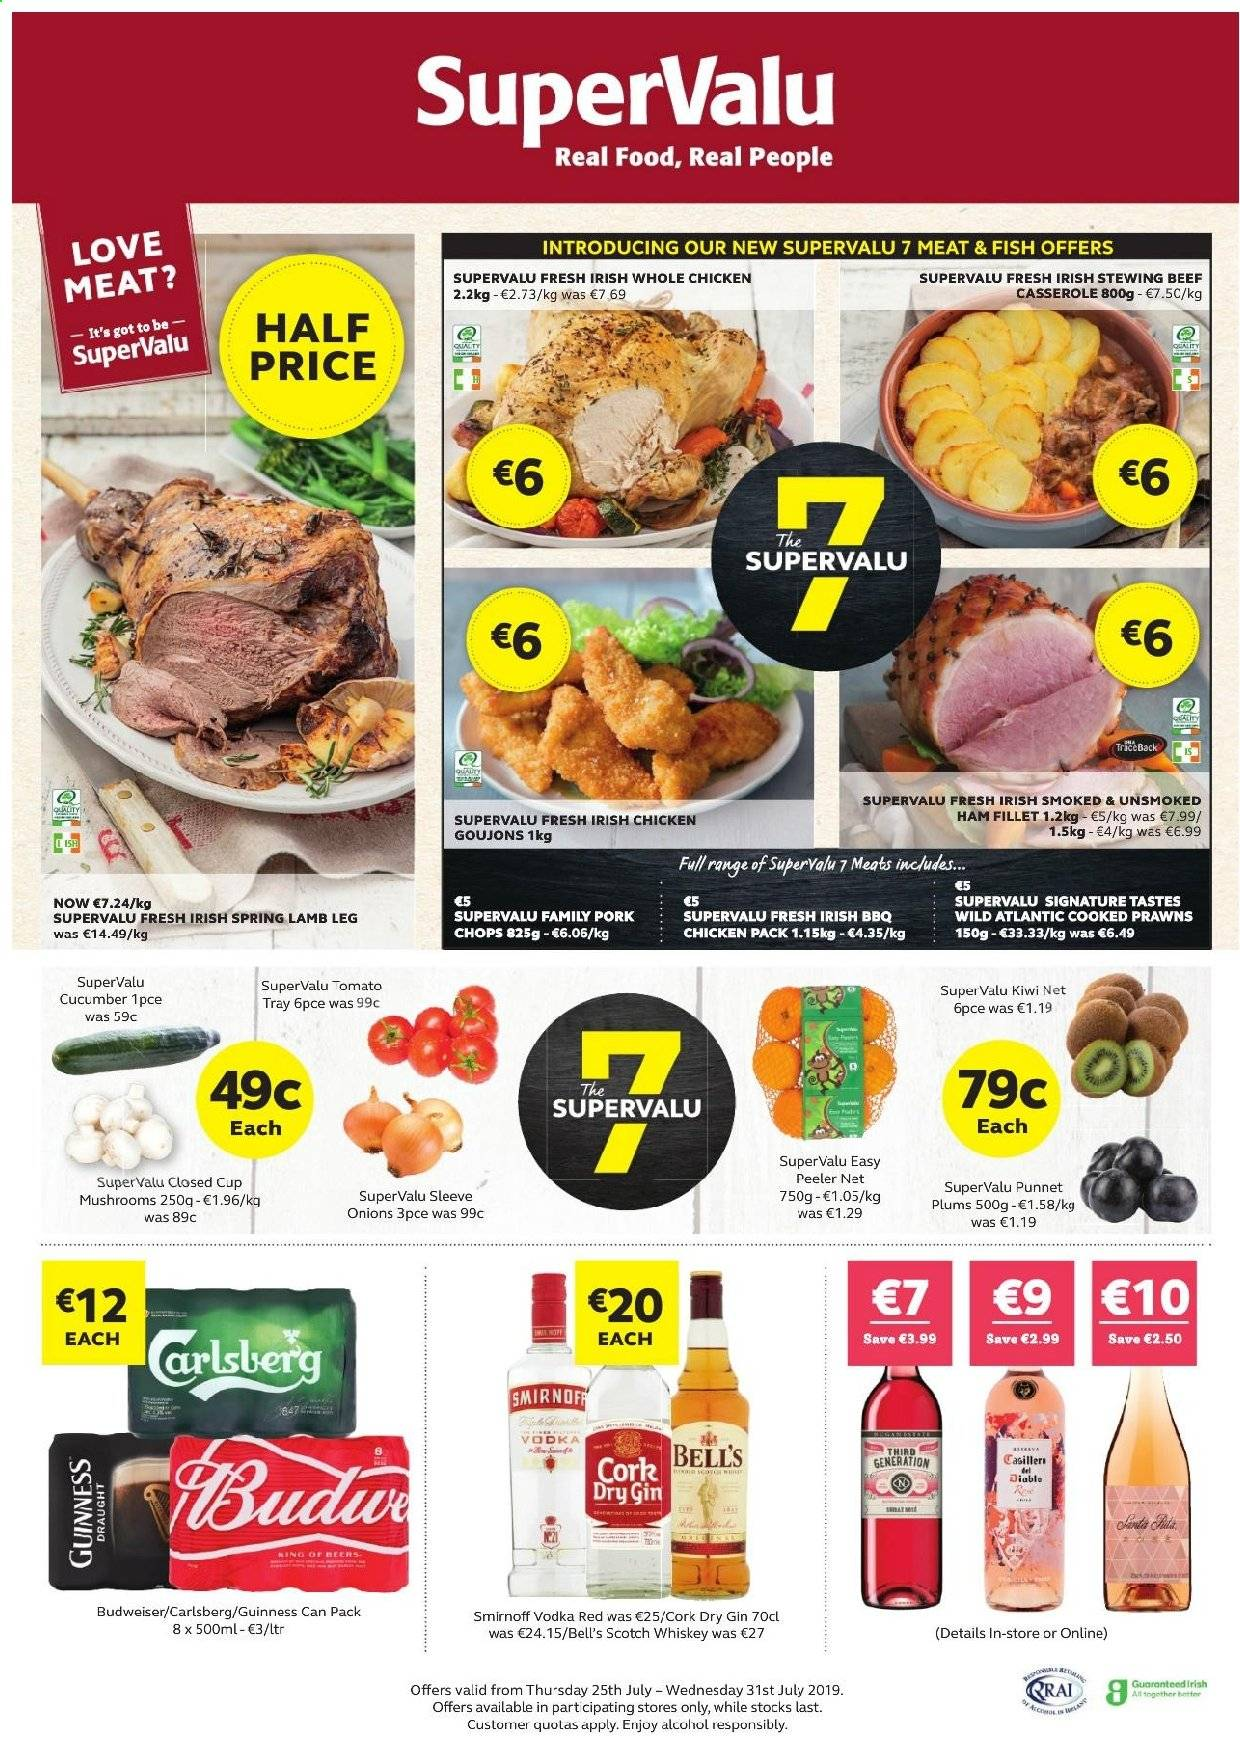 SuperValu offer  - 25.7.2019 - 31.7.2019 - Sales products - beef meat, budweiser, cucumbers, cup, gin, kiwi, lamb meat, mushrooms, smirnoff, tray, vodka, whiskey, whole chicken, ham, plums, pork meat, prawns, chicken, onion, casserole. Page 1.